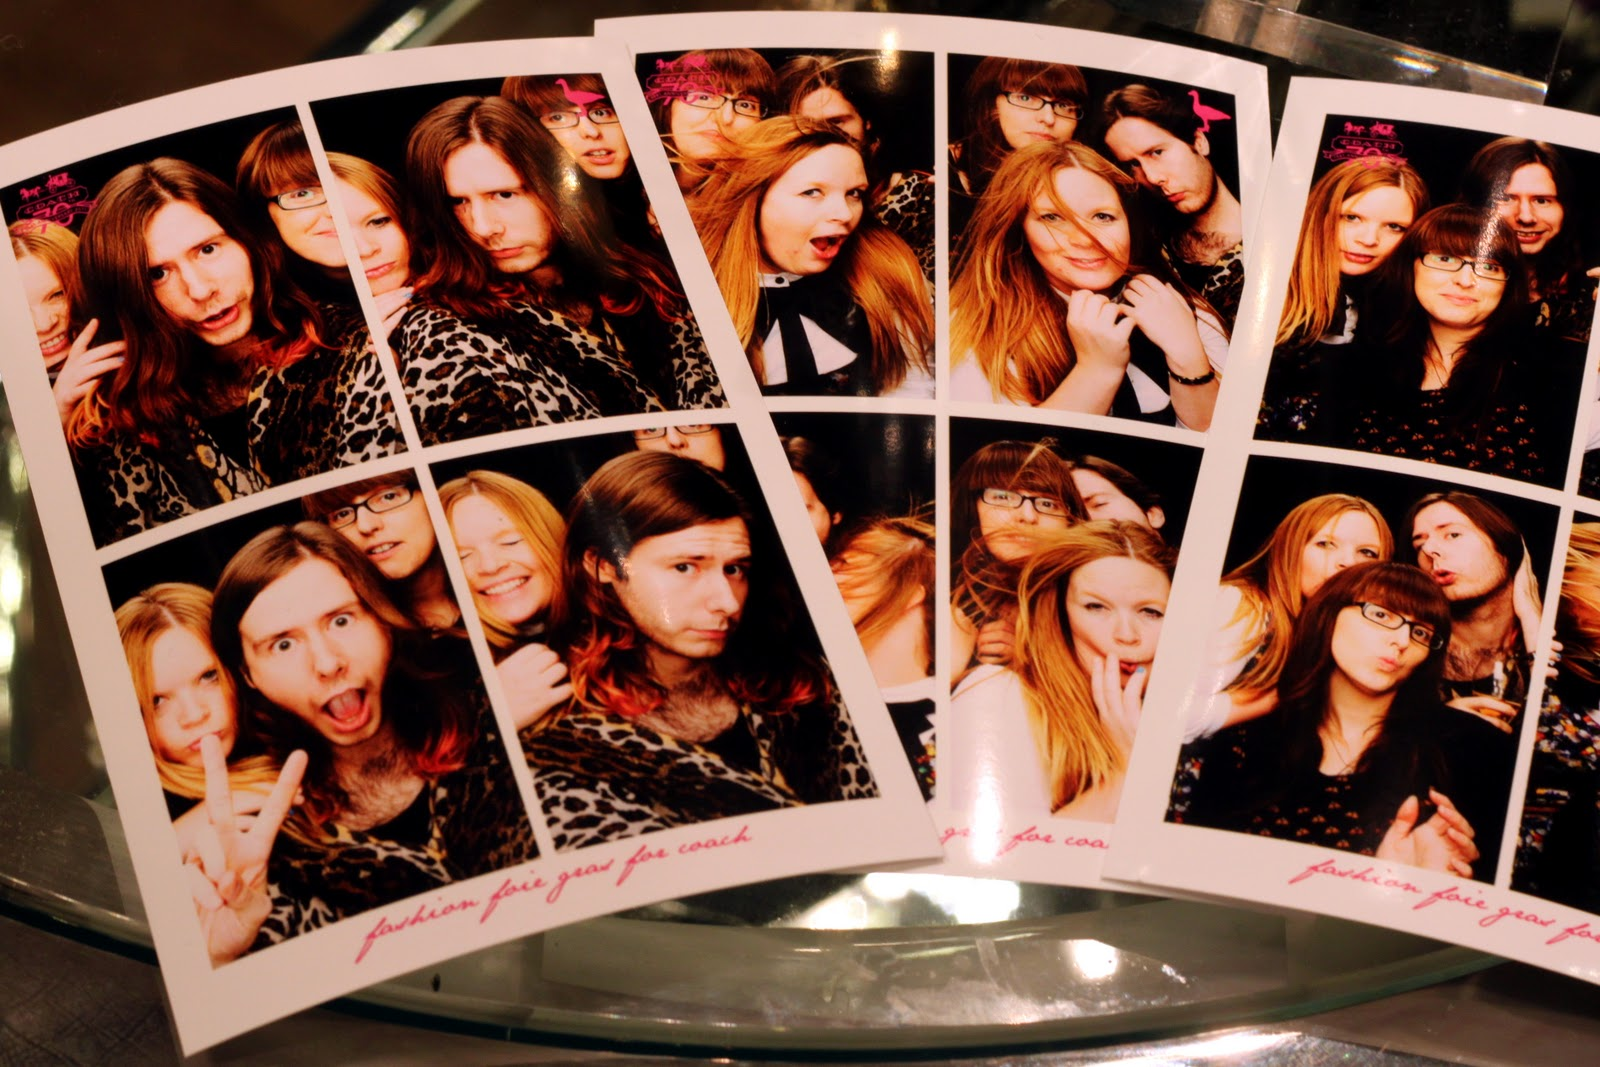 Anastasia Duck, Alex Loves and Fashionista Barbie in photobooth pictures